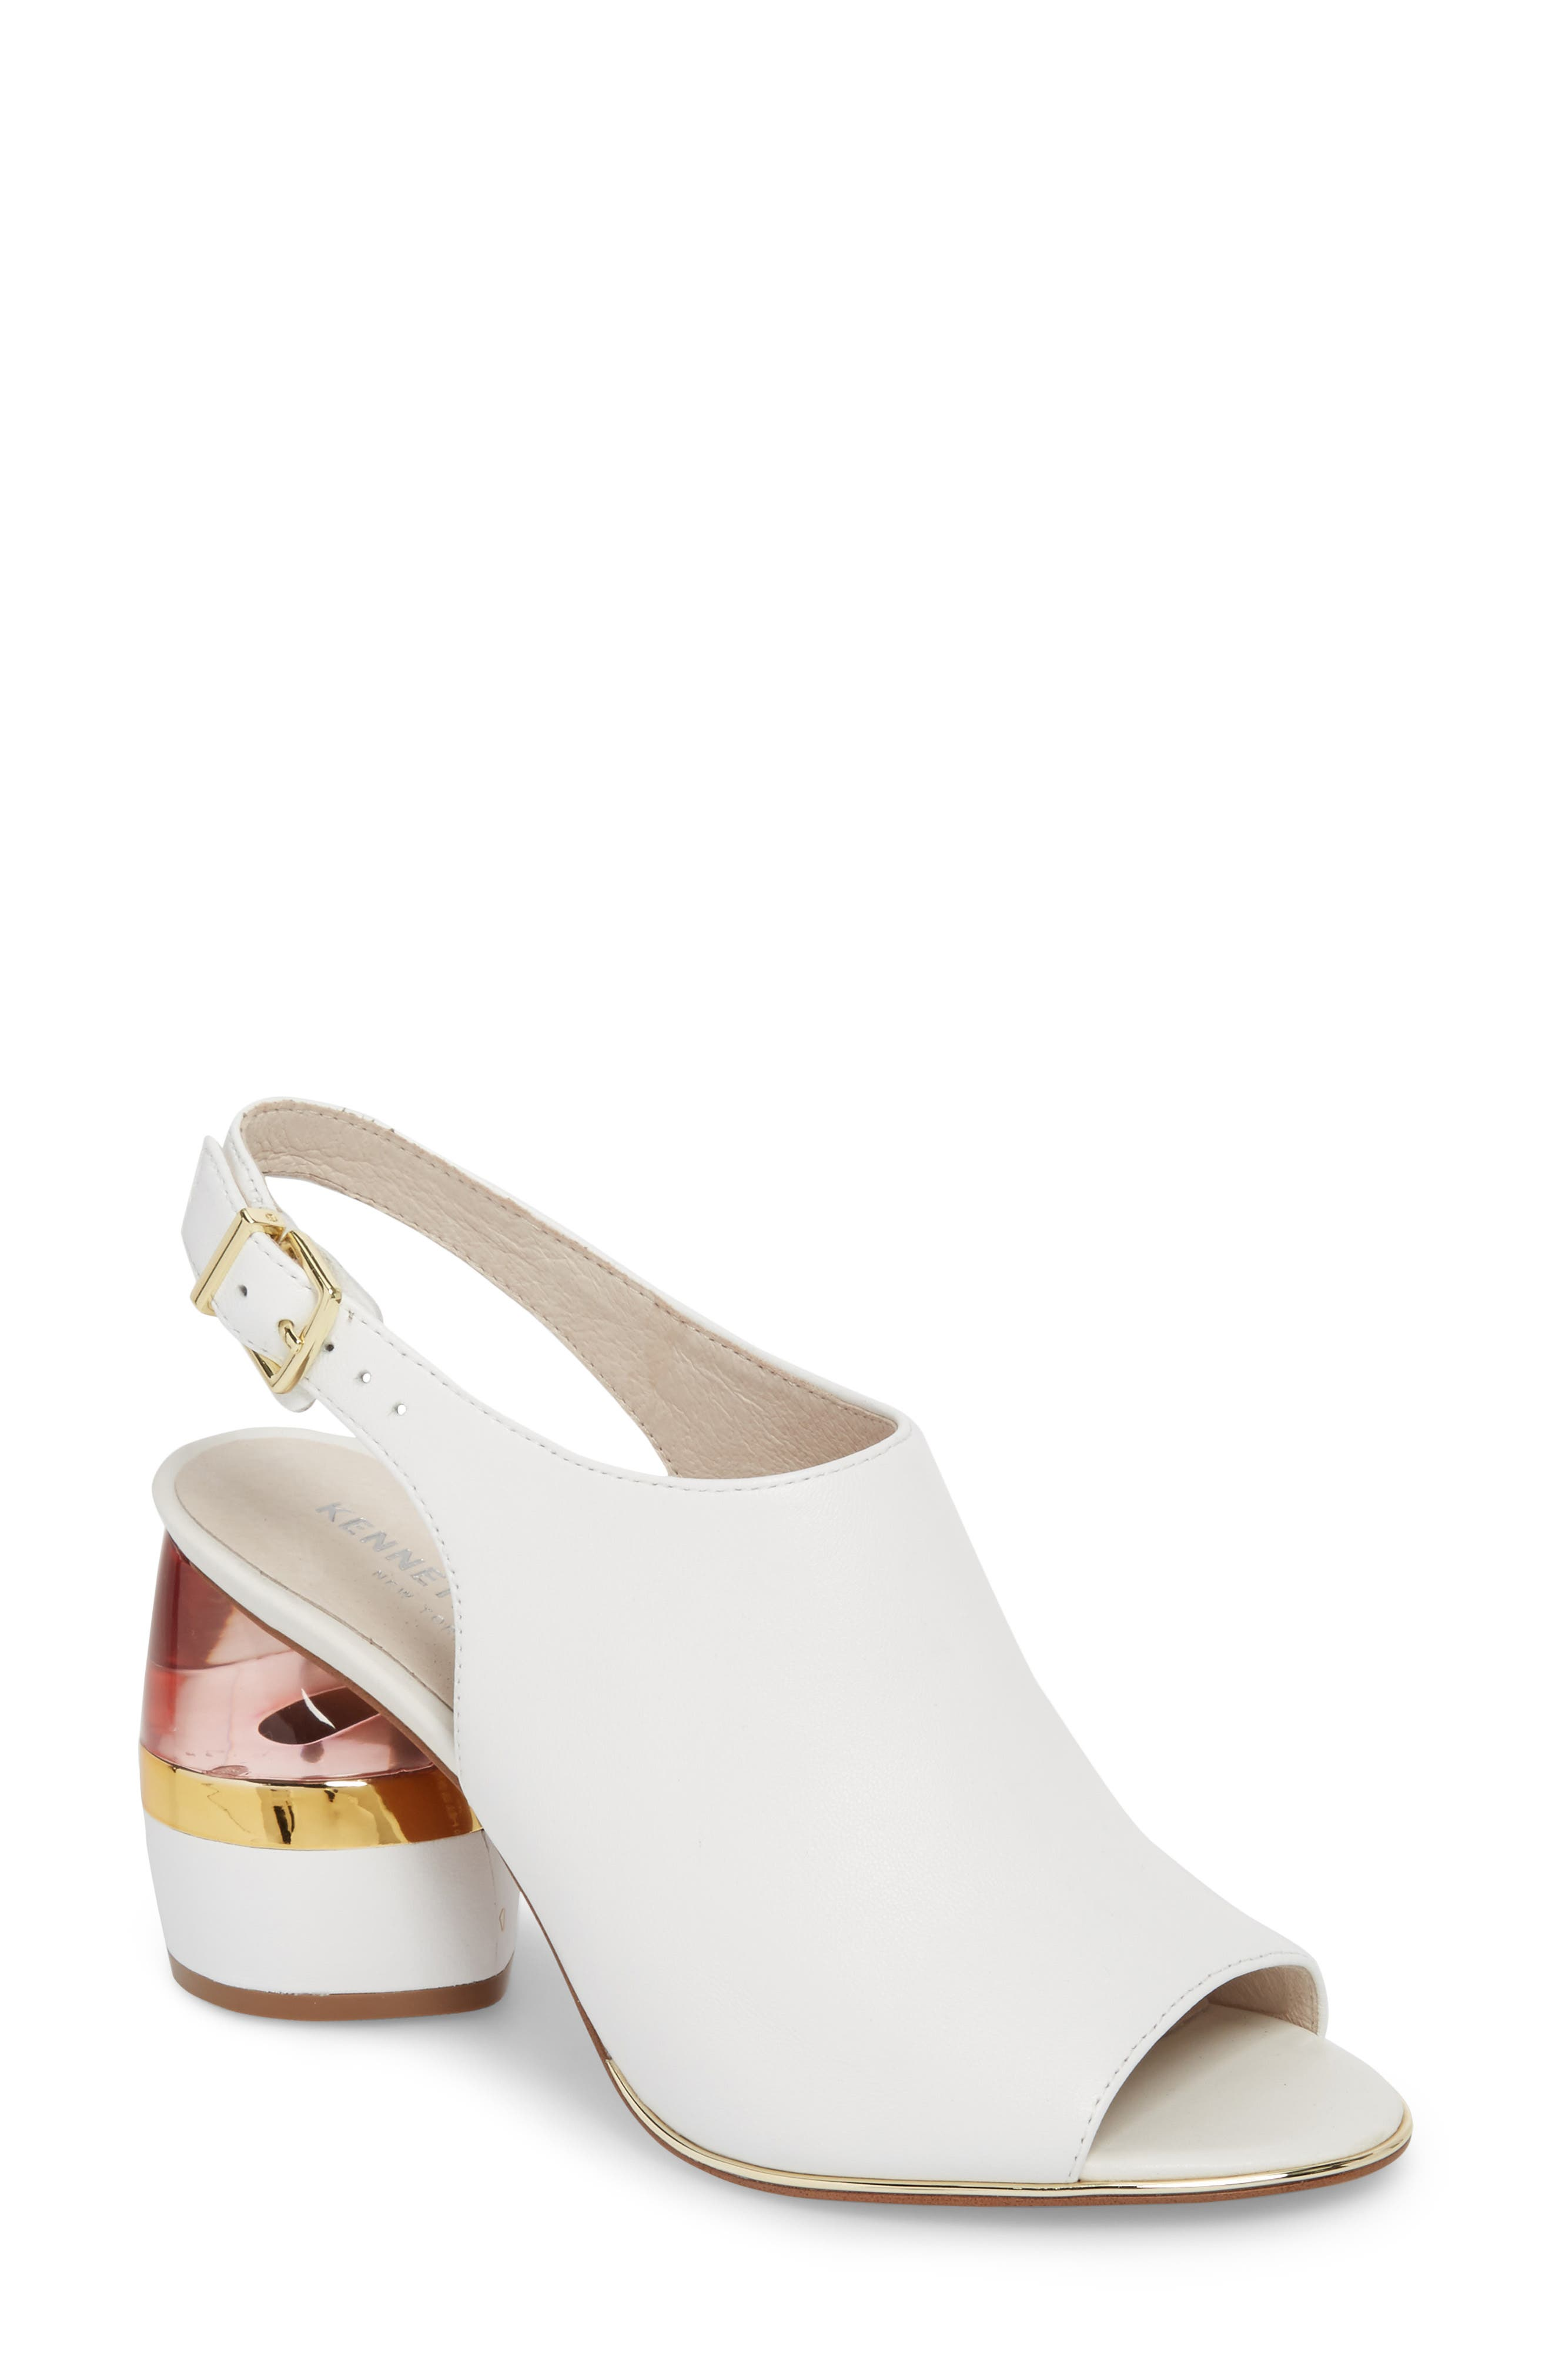 Lovelle Statement Heel Sandal,                         Main,                         color, White Leather